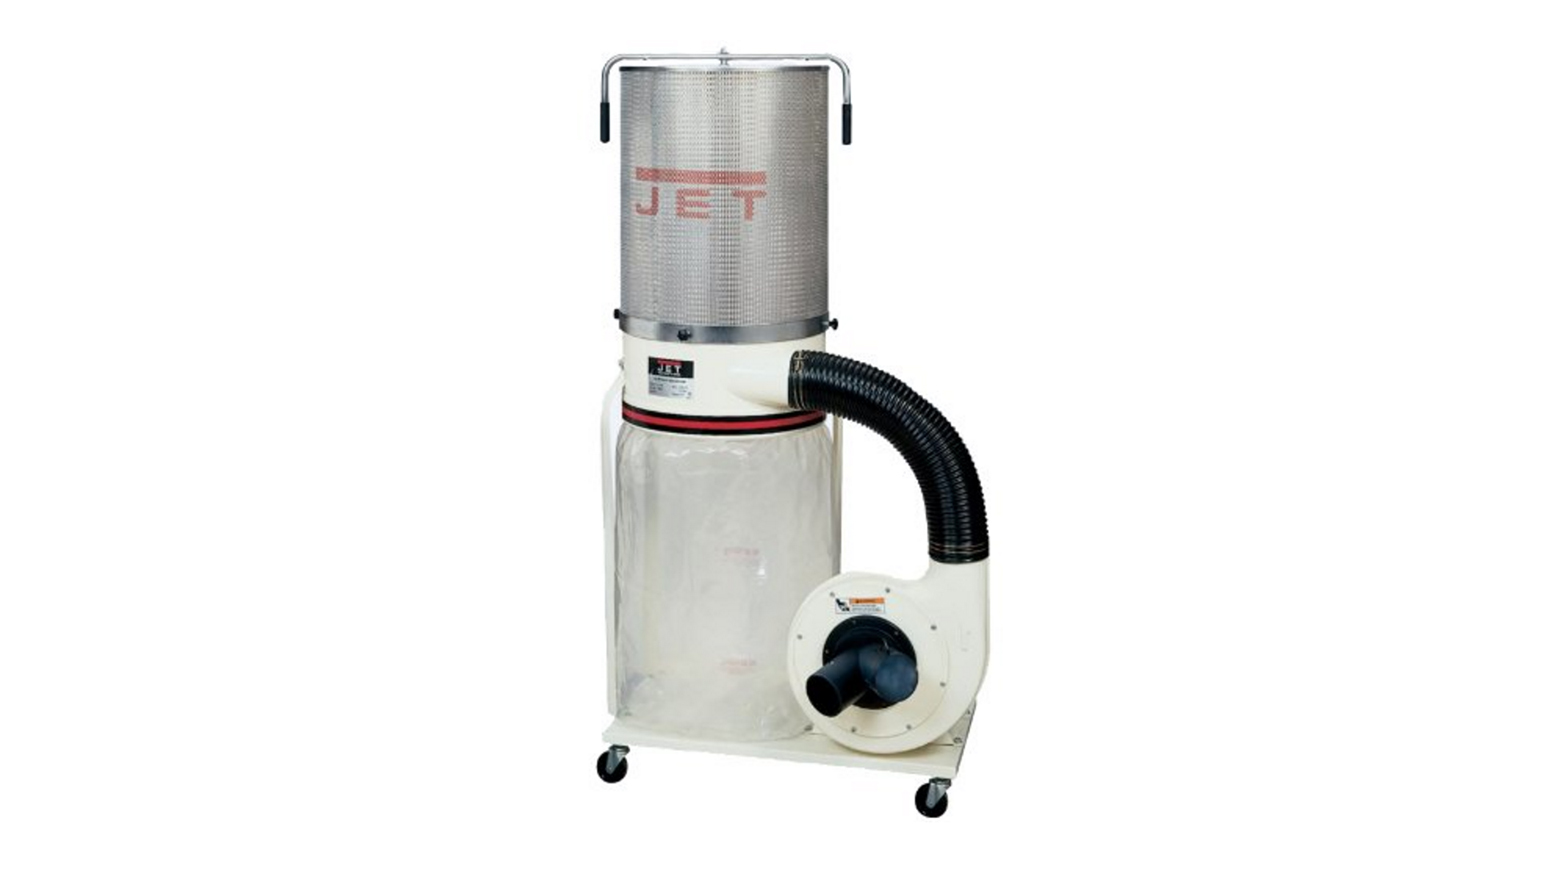 Amazon, cyber monday, cyber monday sales, cyber monday deals, tools, power tools, hand tools, woodworking tools, dust collector, dust collection system, Jet